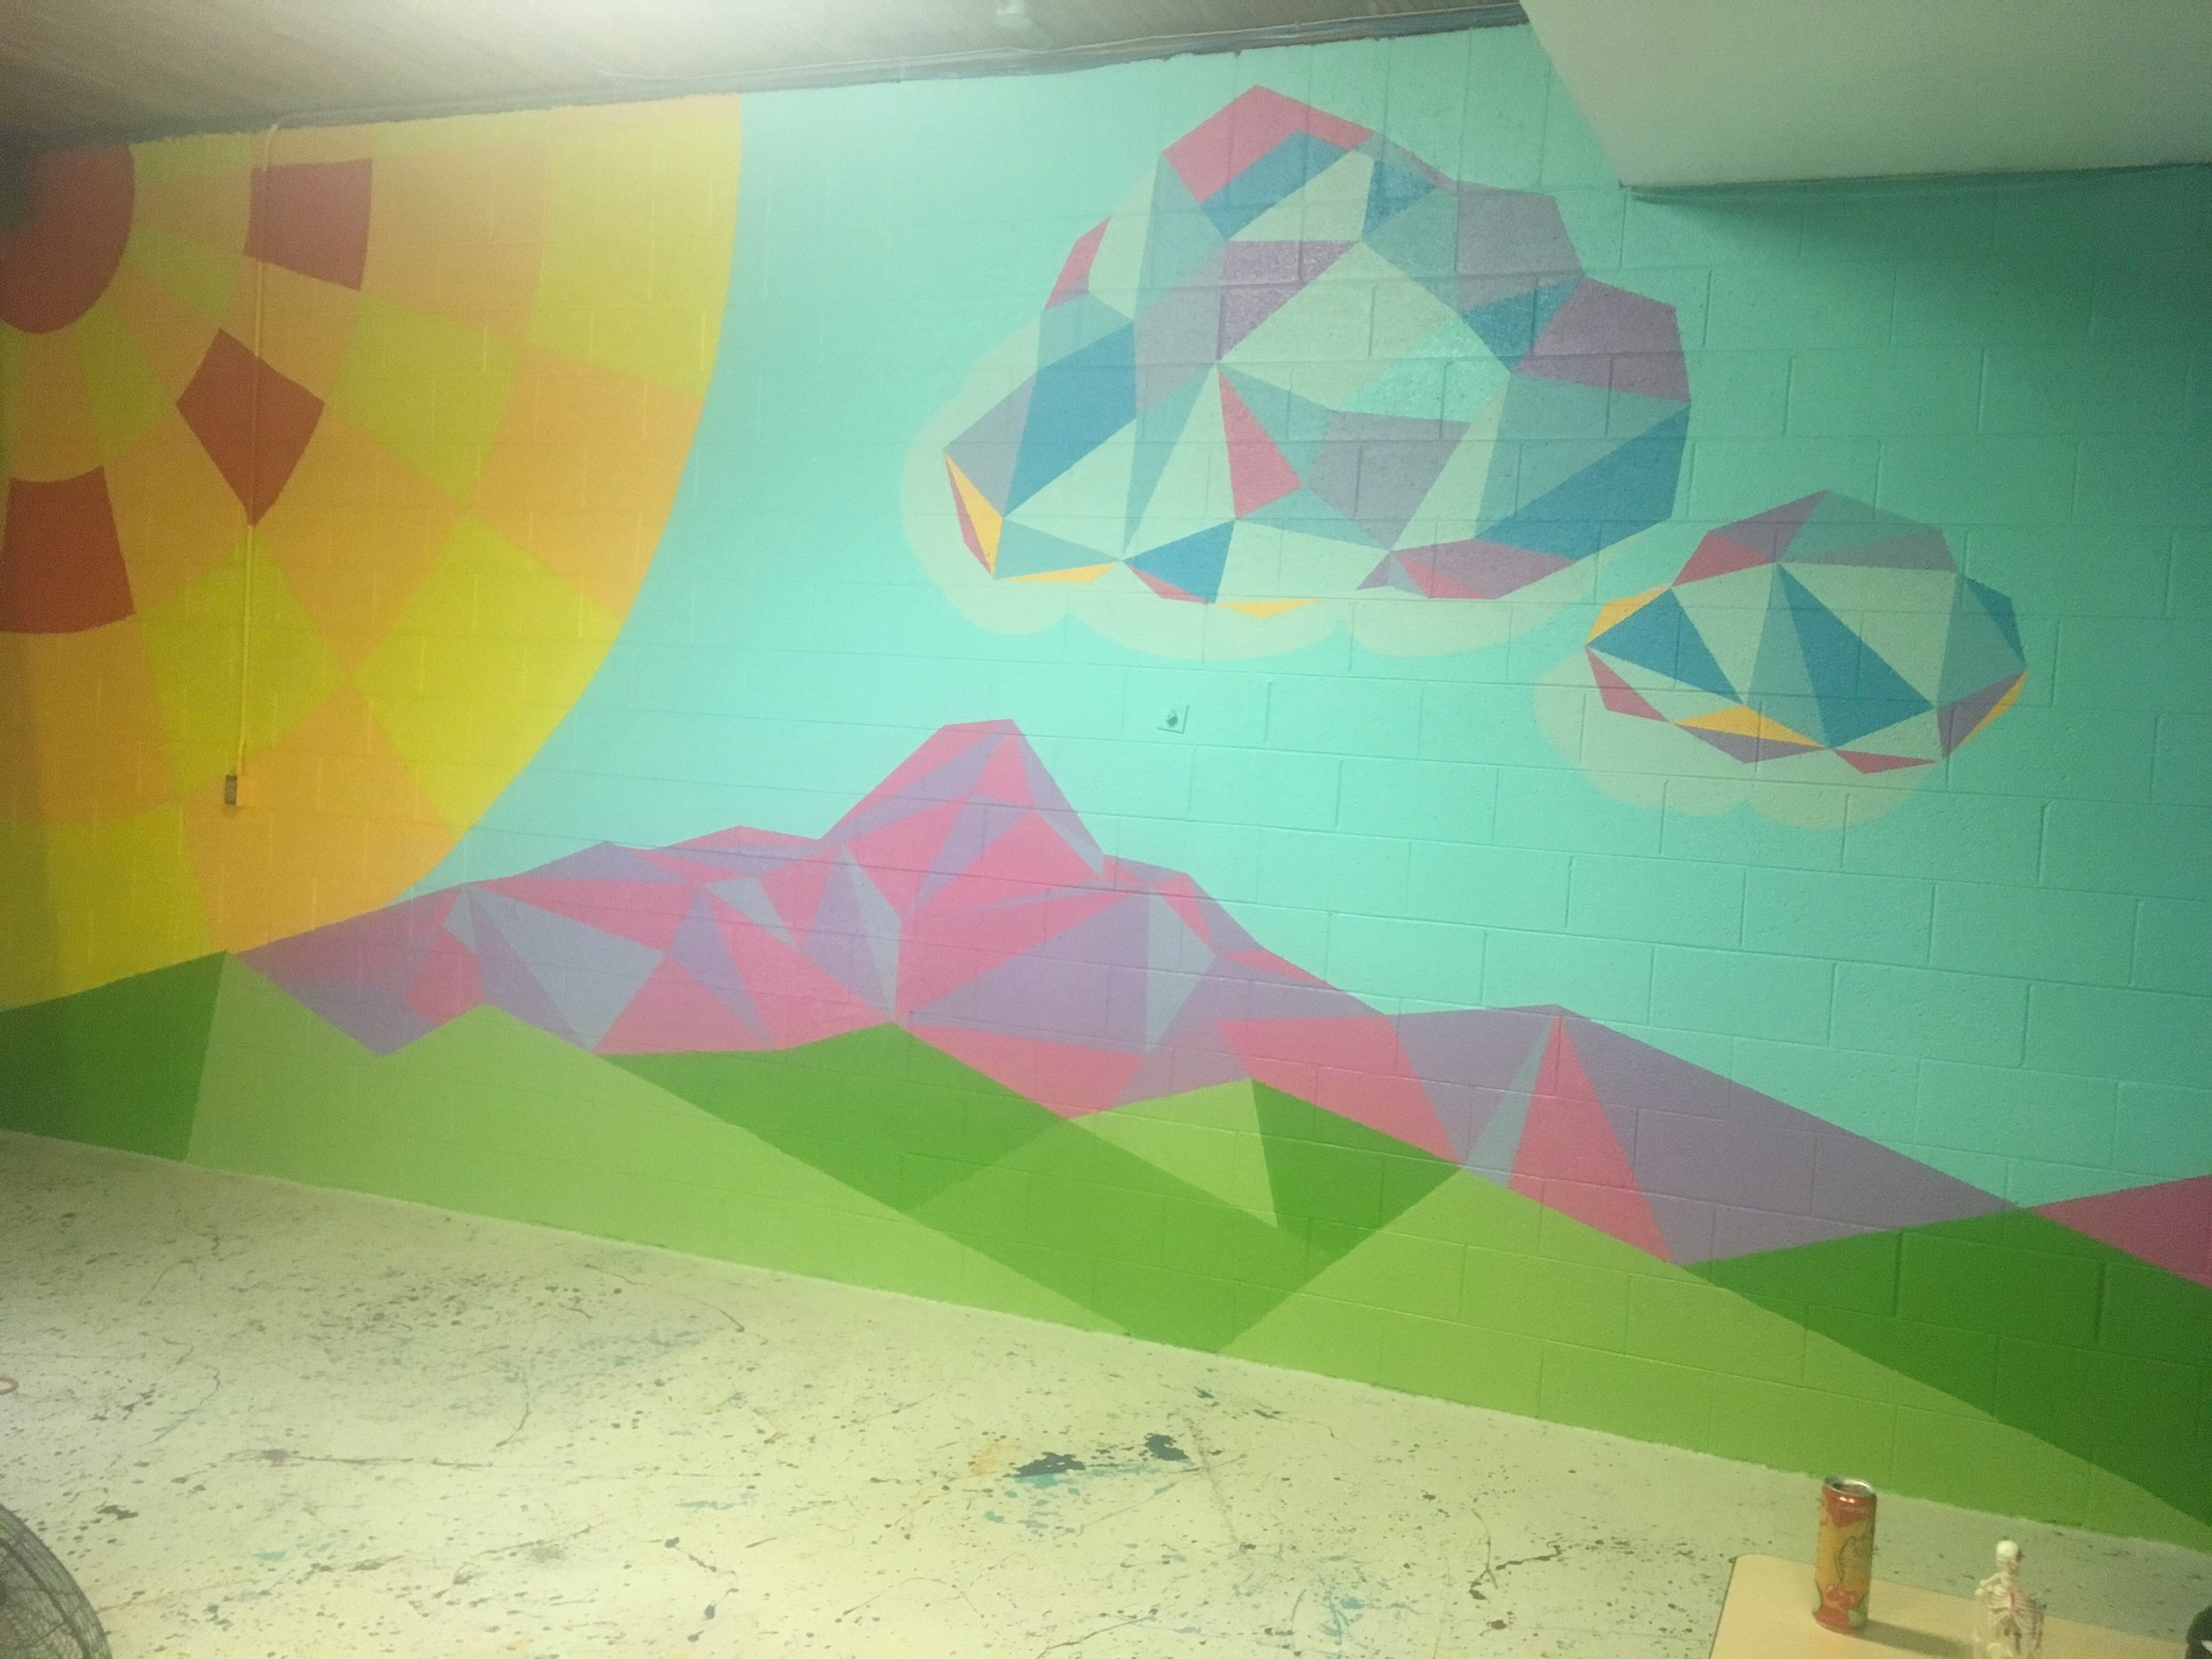 The newly completed mural